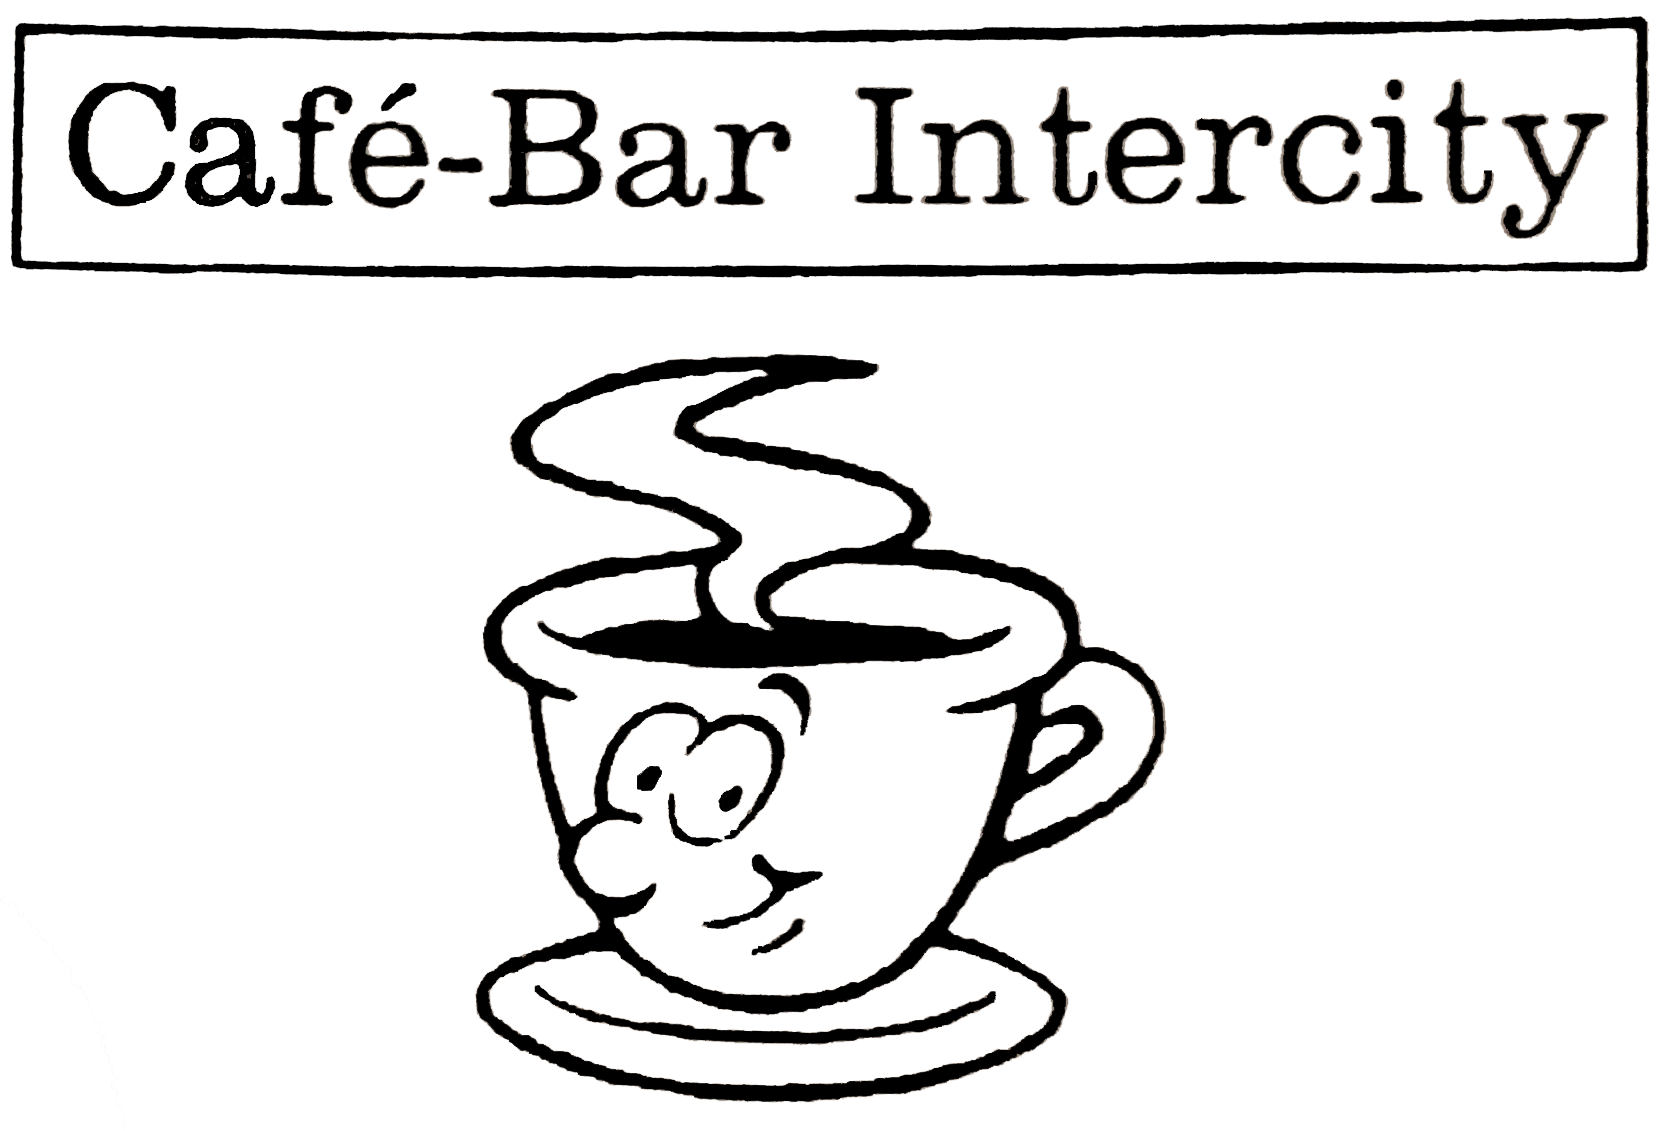 Café-Bar Intercity